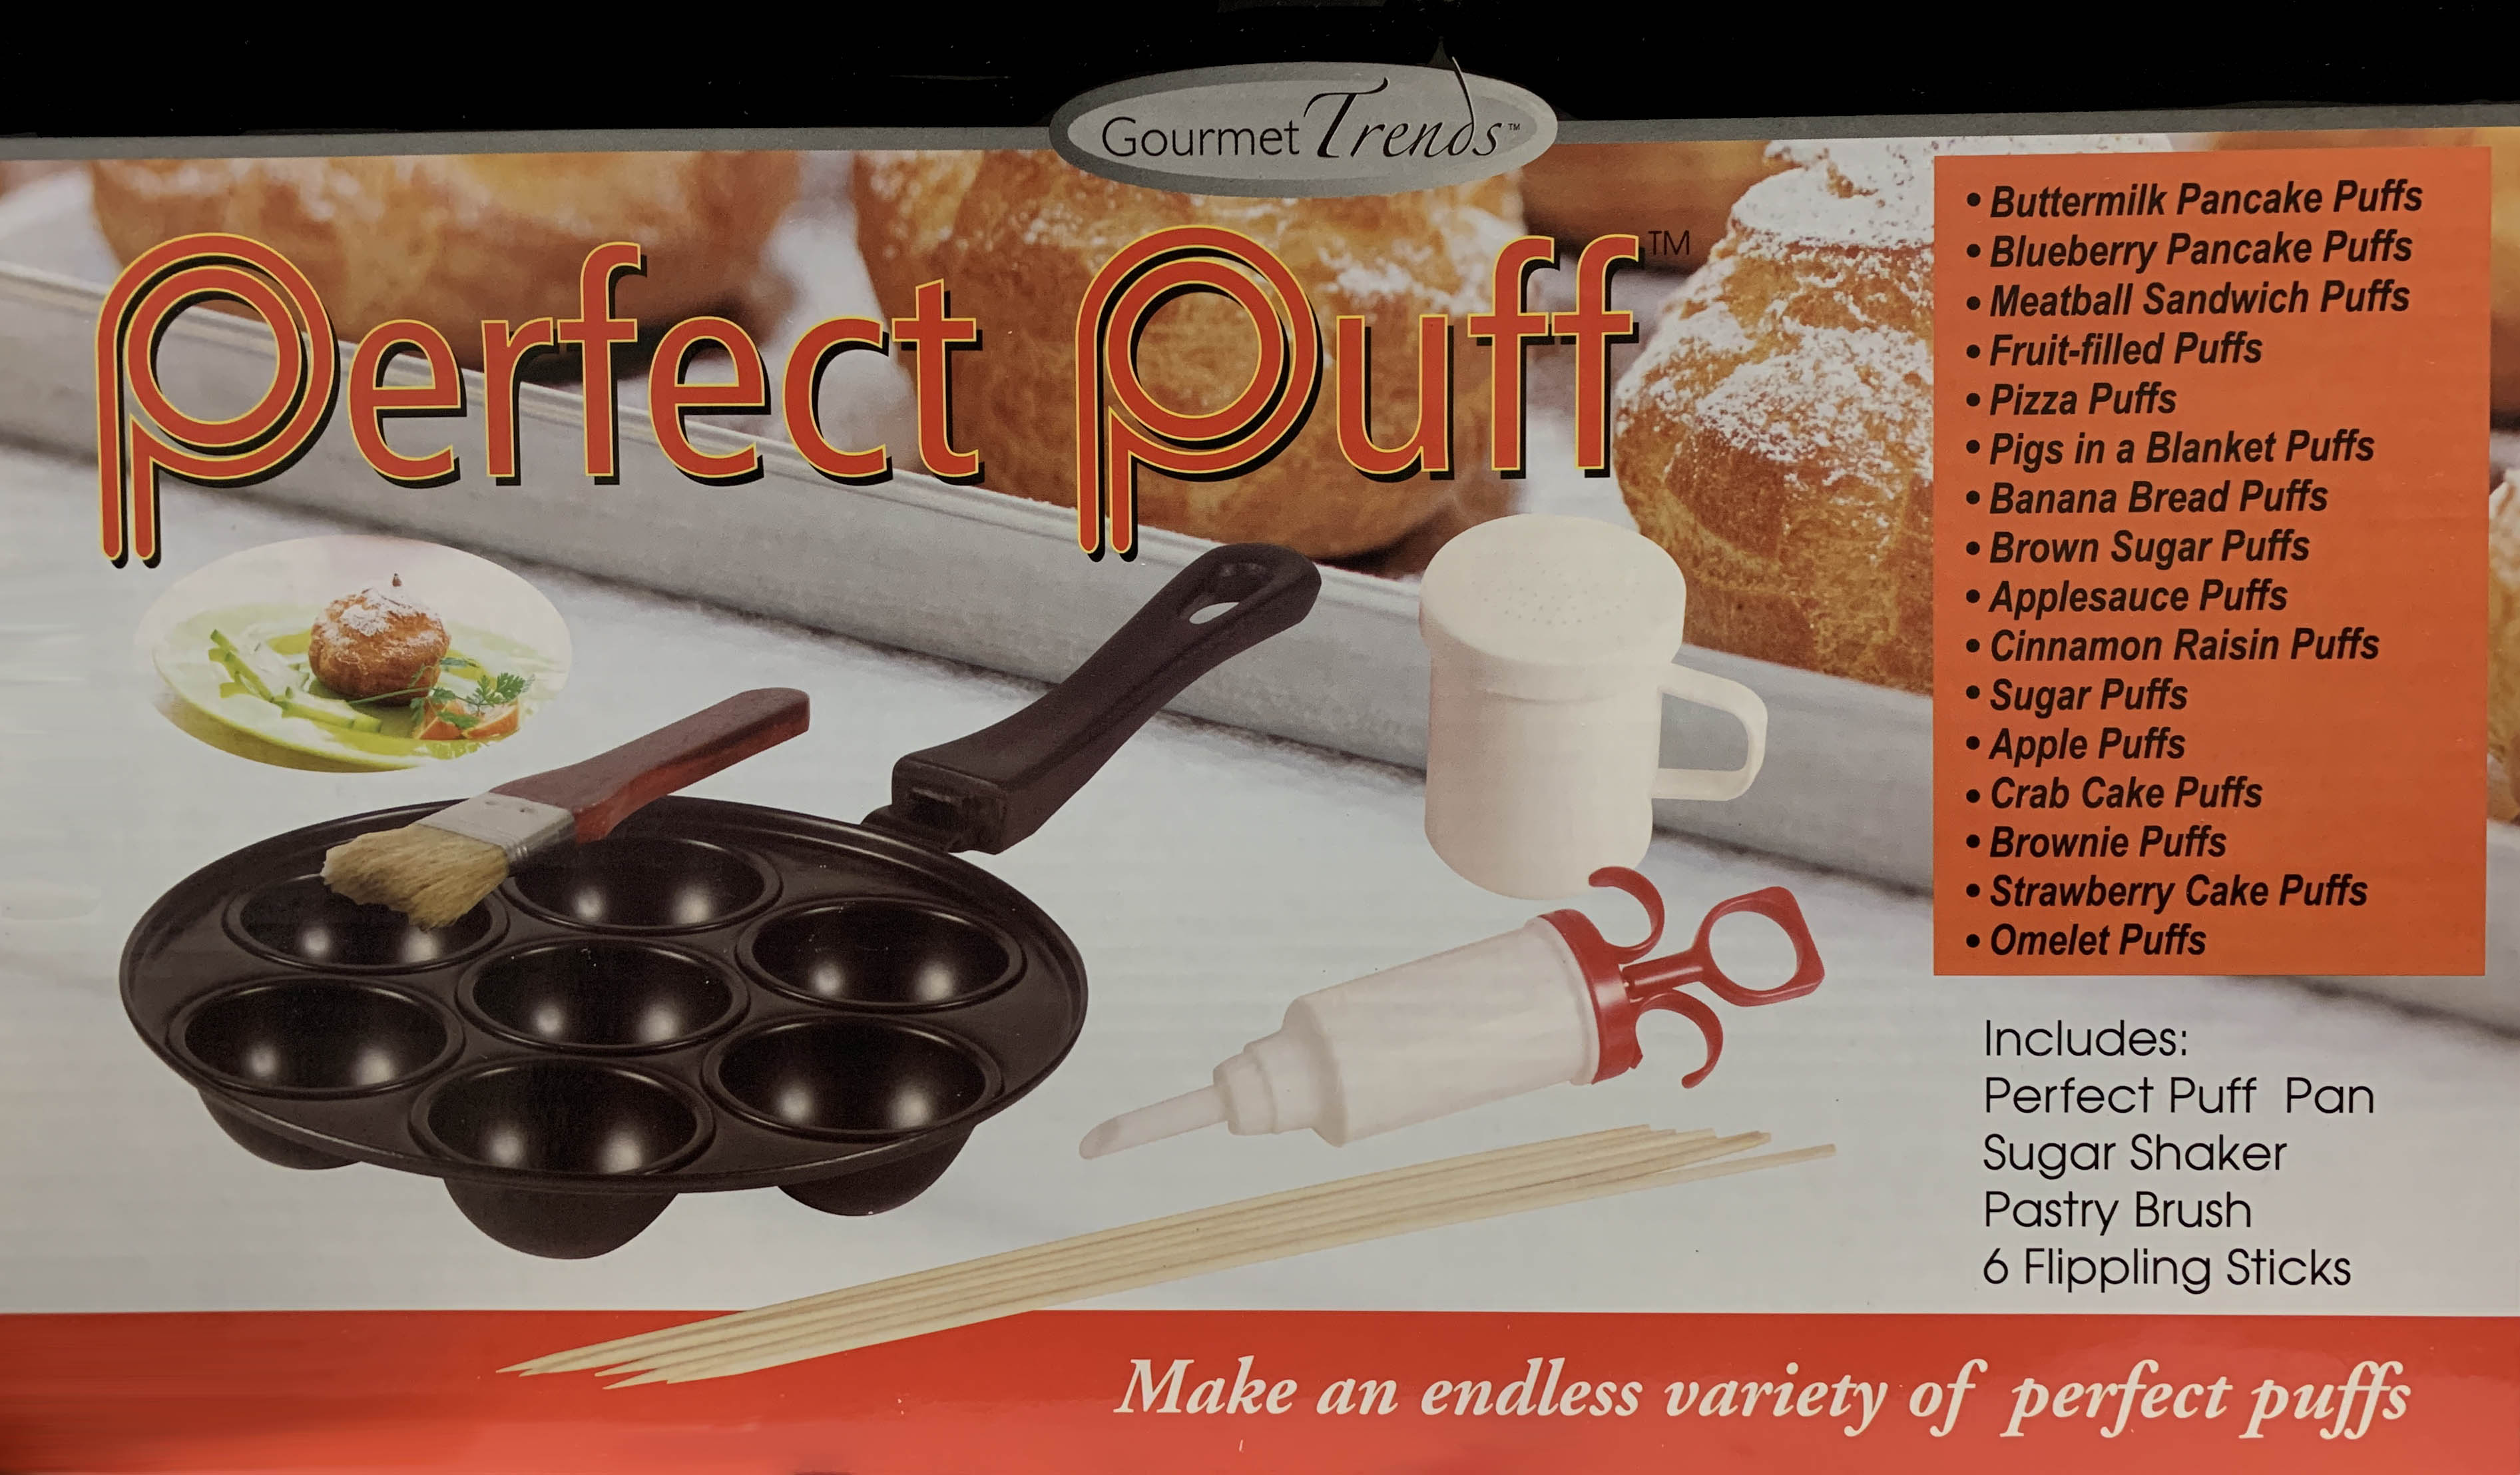 Gourmet Trends Perfect Puff